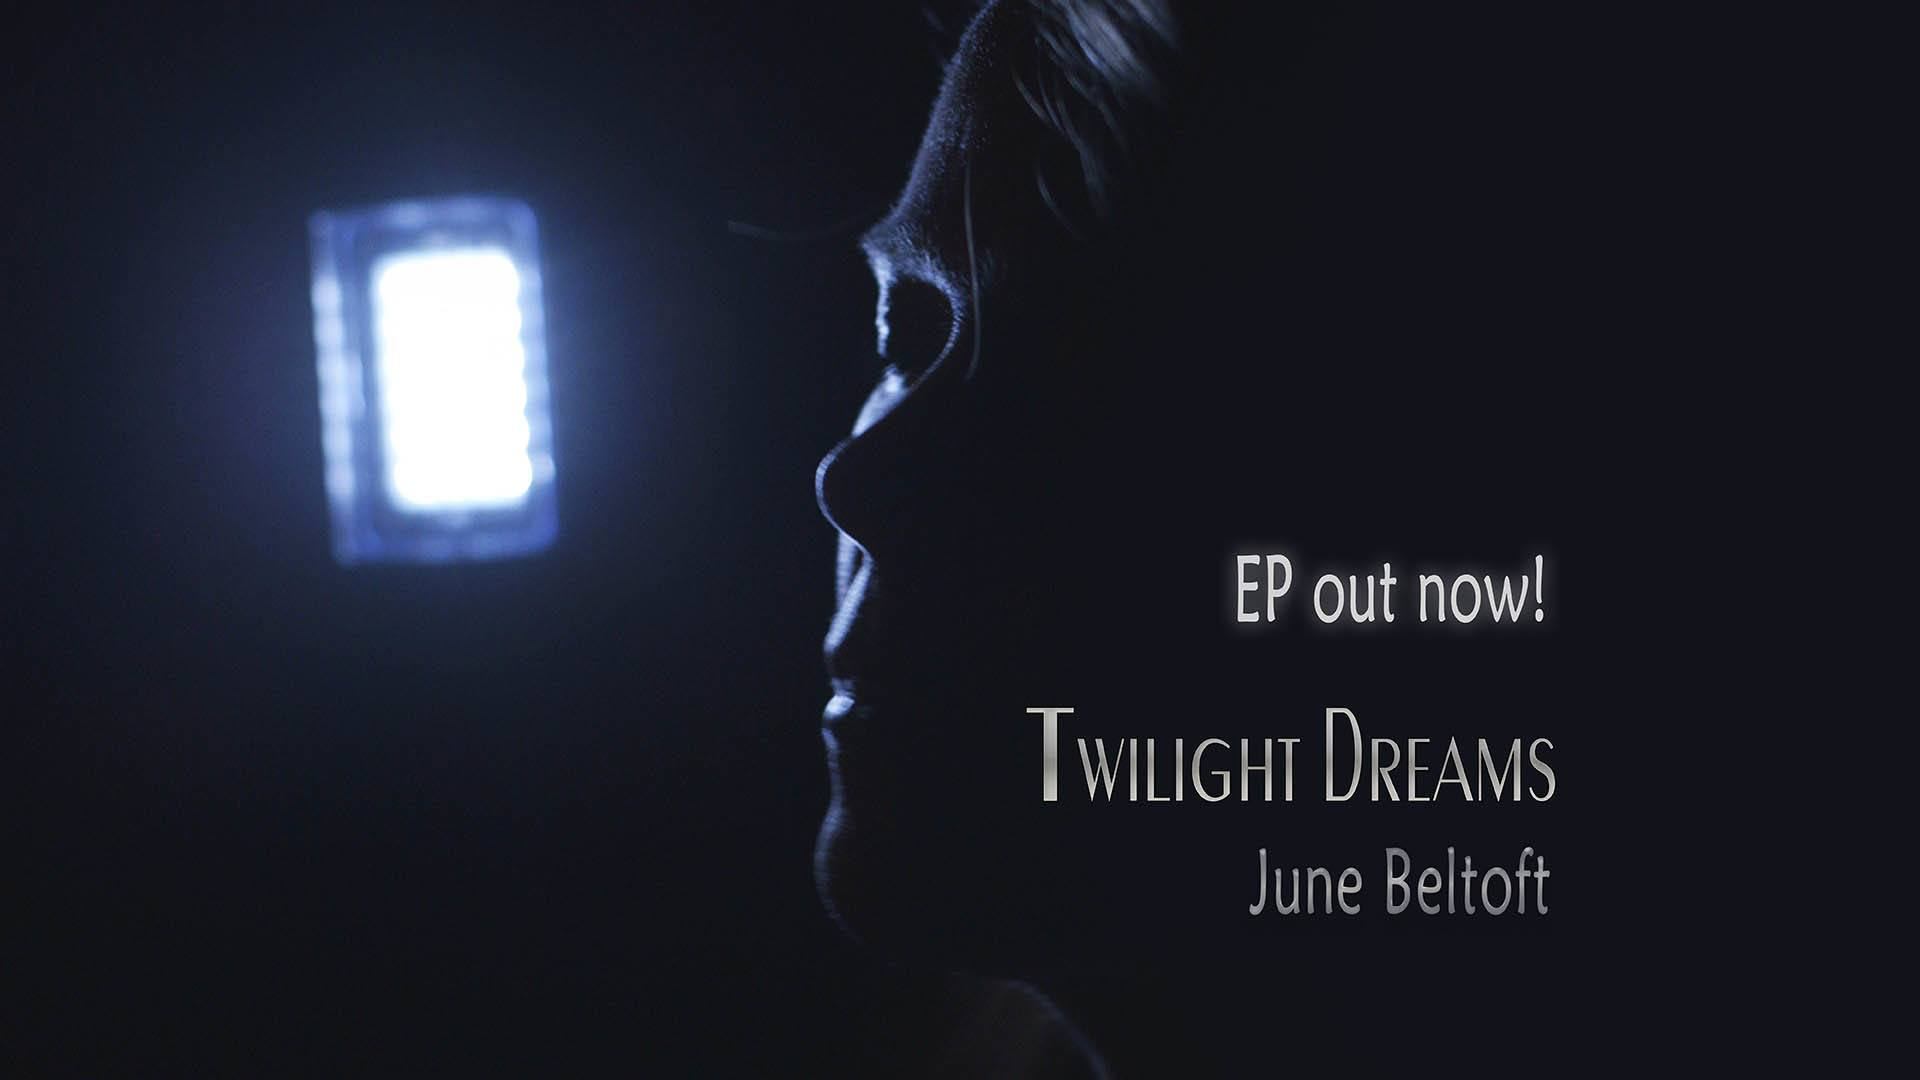 Twilight Dreams, EP by June Beltoft avaliable on Spotify, Apple Music, iTunes, Youtube, Deezer, Tidal, YouSee Music and most other music streaming services